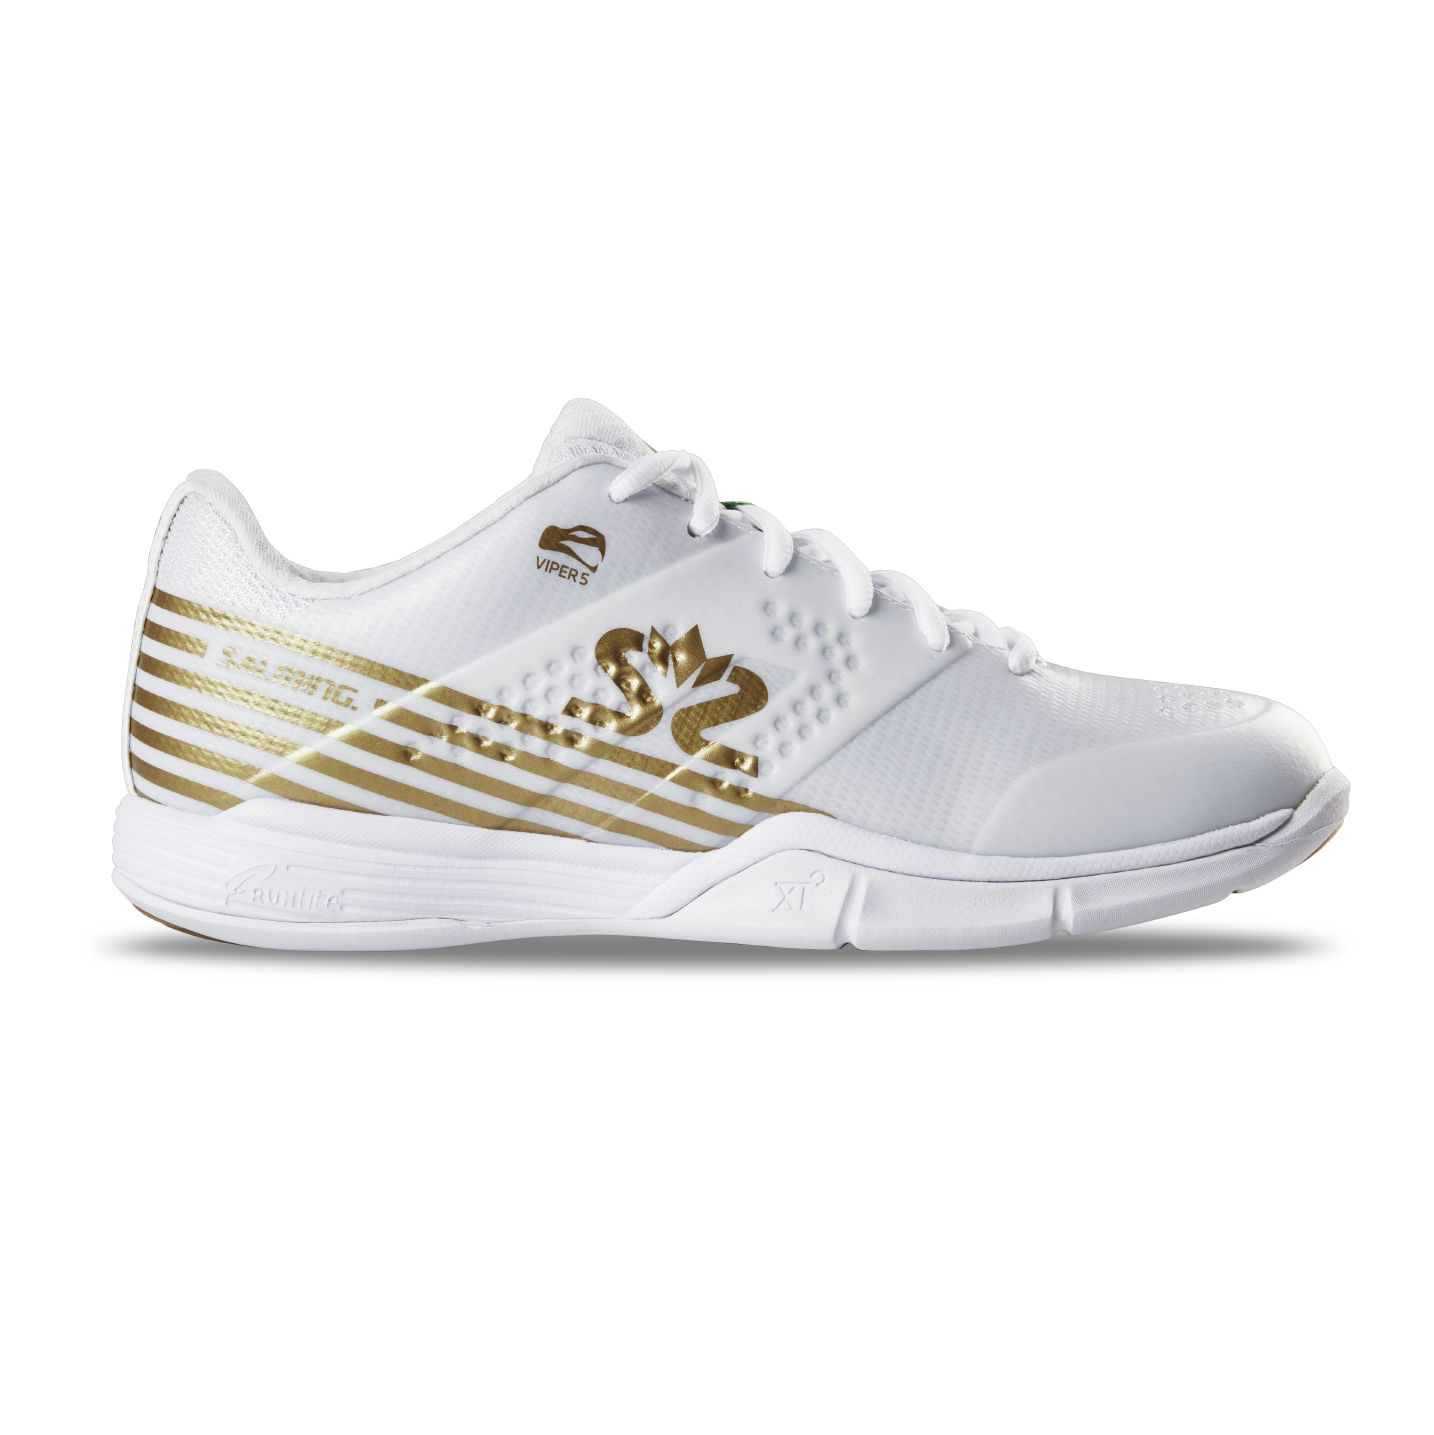 Salming Viper 5 Shoe Women White/Gold 5,5 UK - 38 2/3 EUR - 24,5 cm